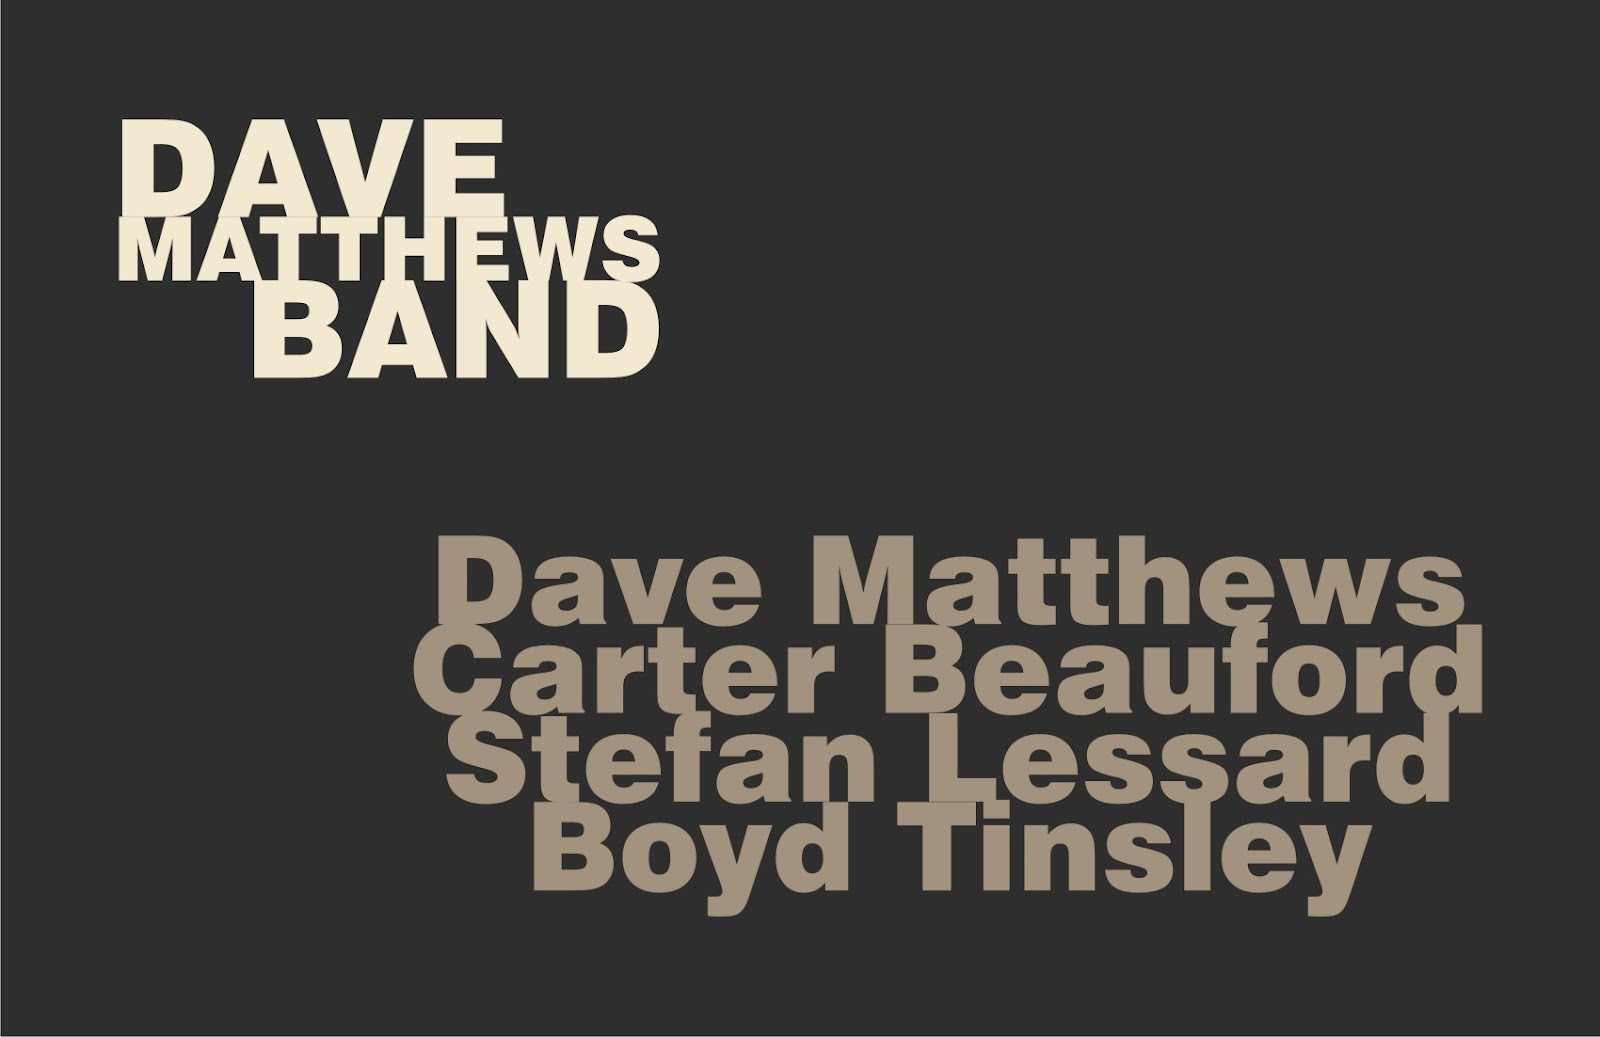 dave_matthews_band_back_vector